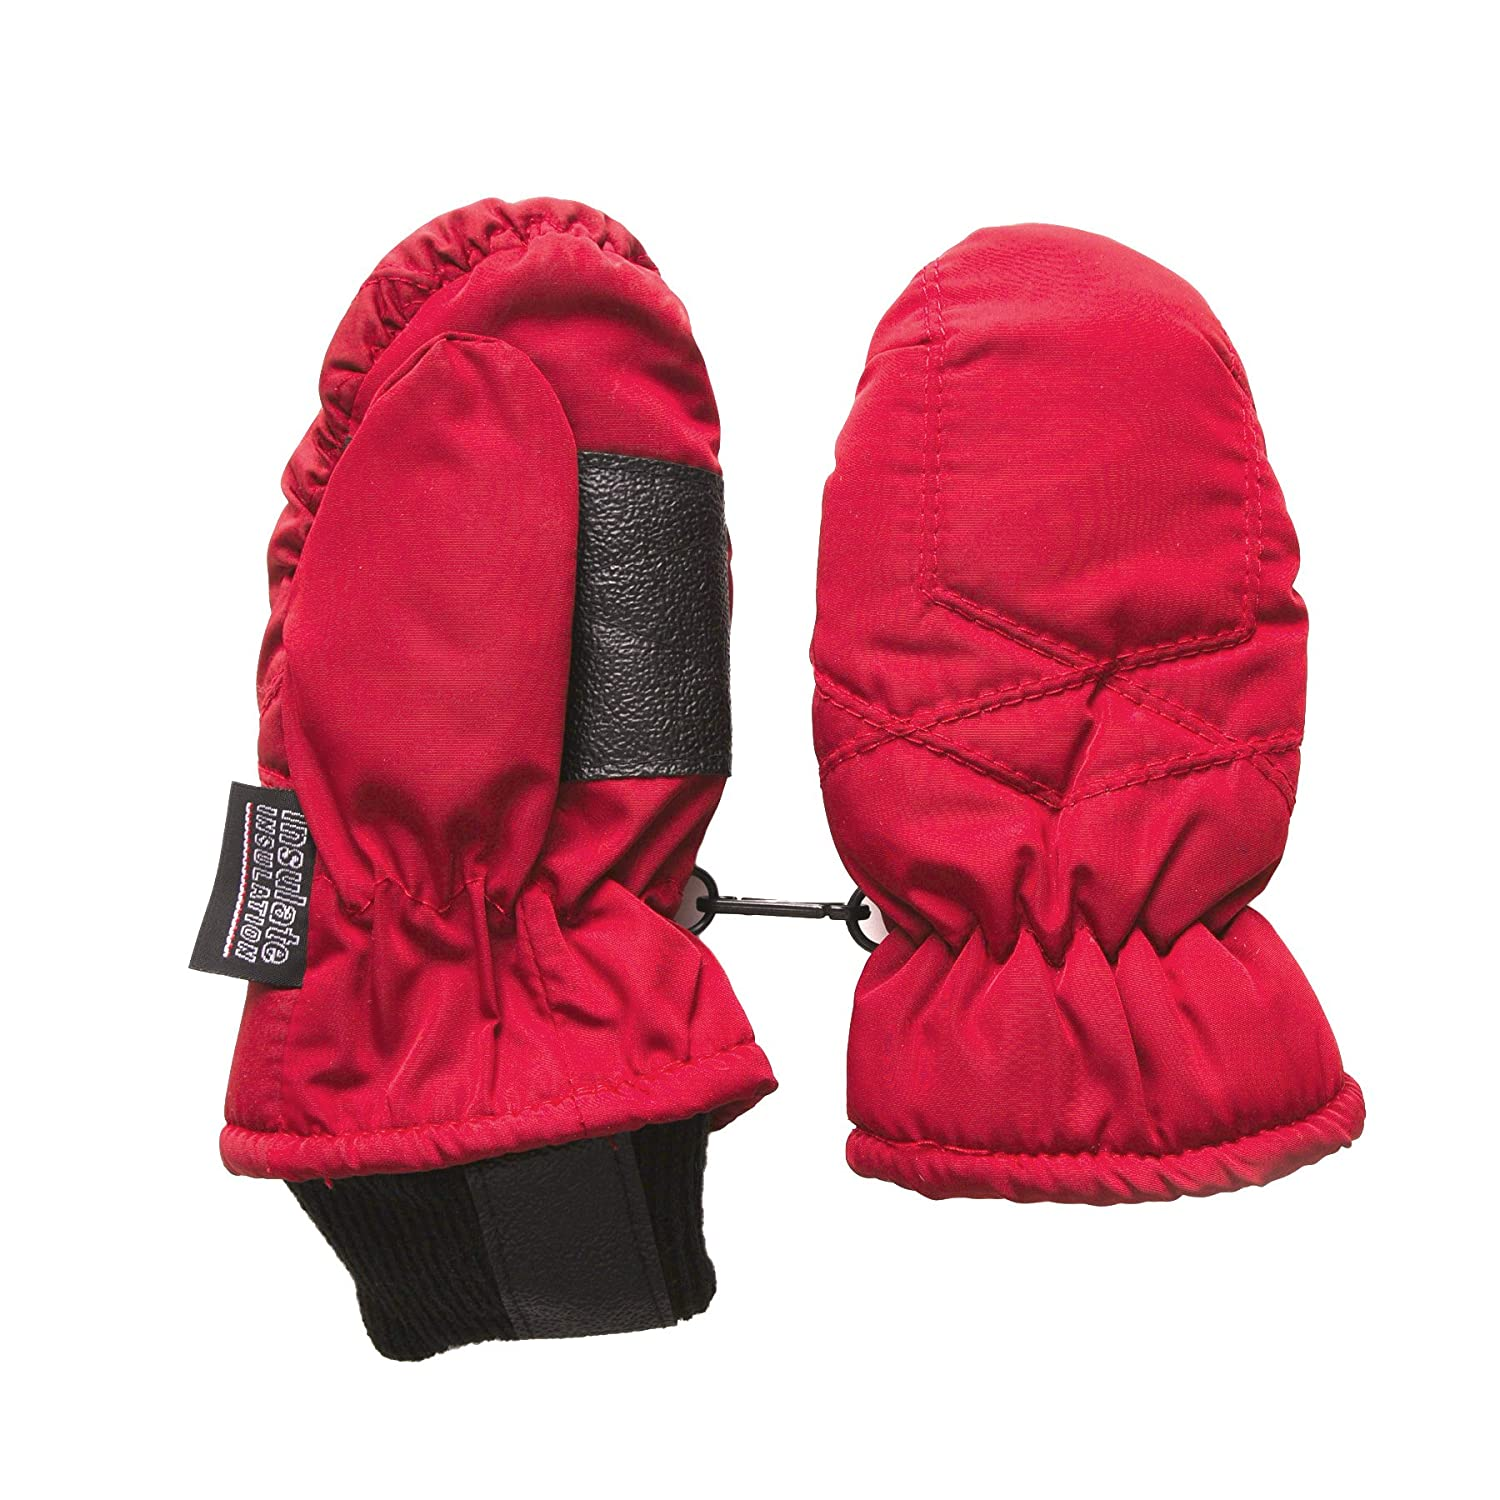 SANREMO Unisex Kids Toddler Thinsulate and Waterproof Cold Weather Ski Mittens 9267-$P